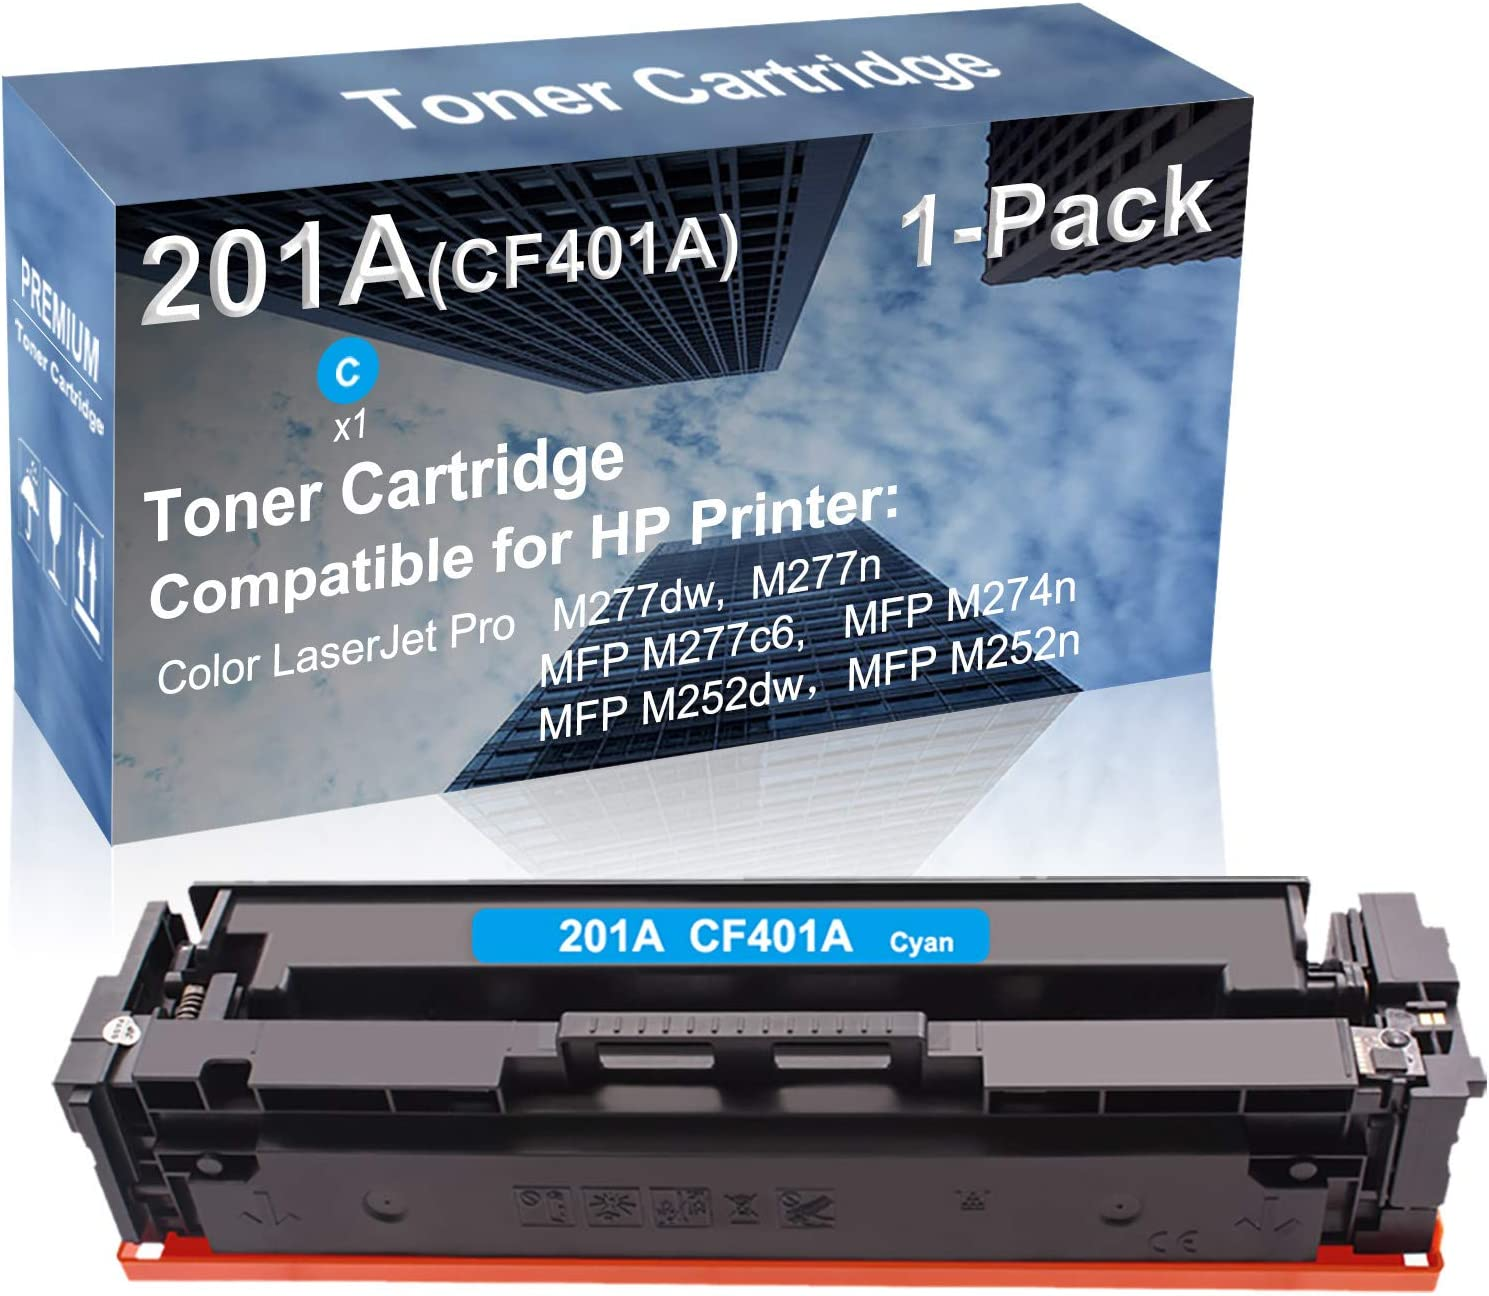 1-Pack (Cyan) Compatible High Yield 201A (CF401A) Laser Printer Toner Cartridge use for HP MFP M252dw, MFP M252n Printer